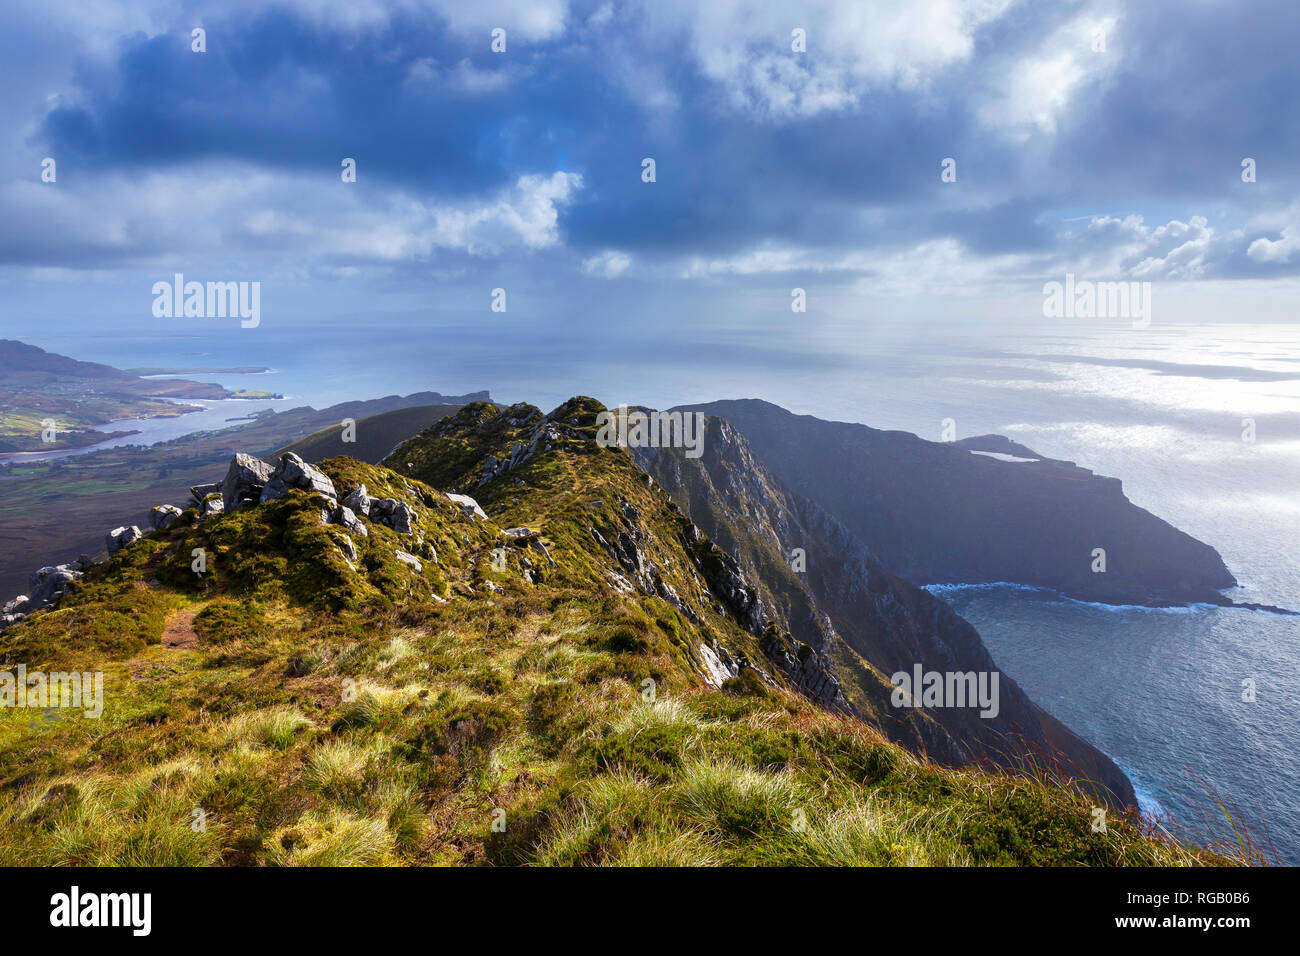 Slieve League, Sliabh Liag, cliffs in West Donegal, Ireland - Stock Image